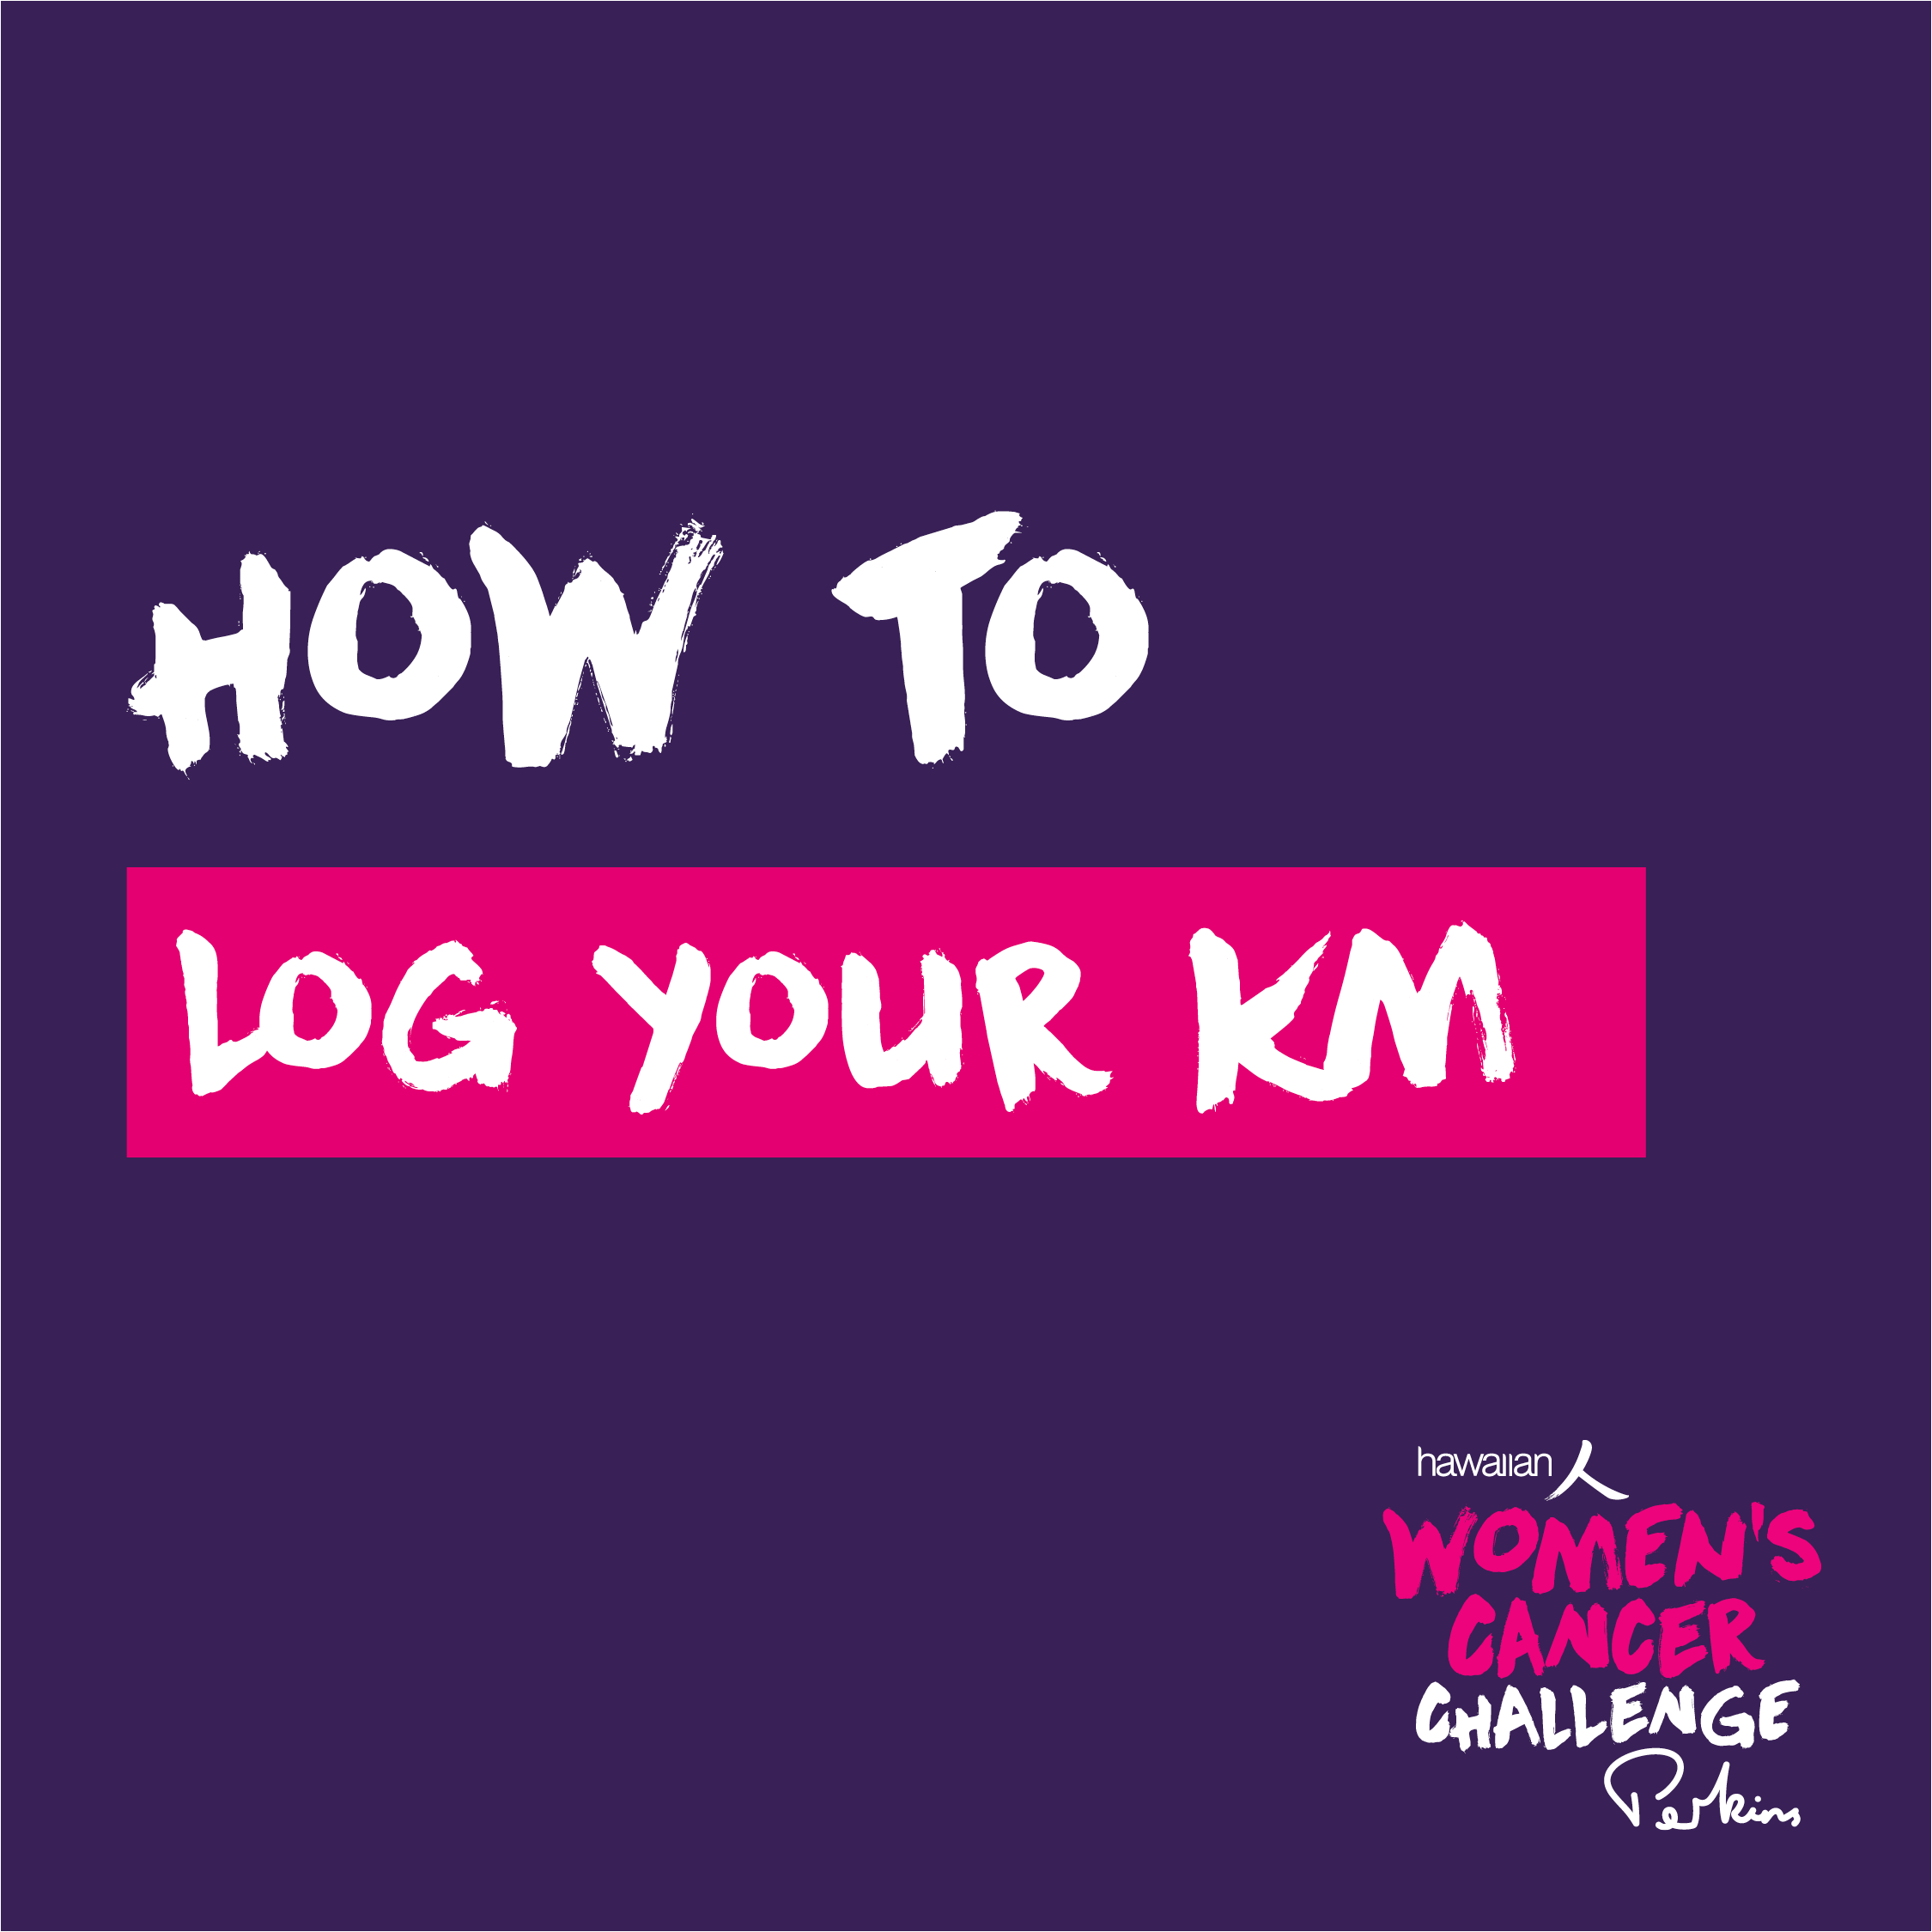 How to log Km